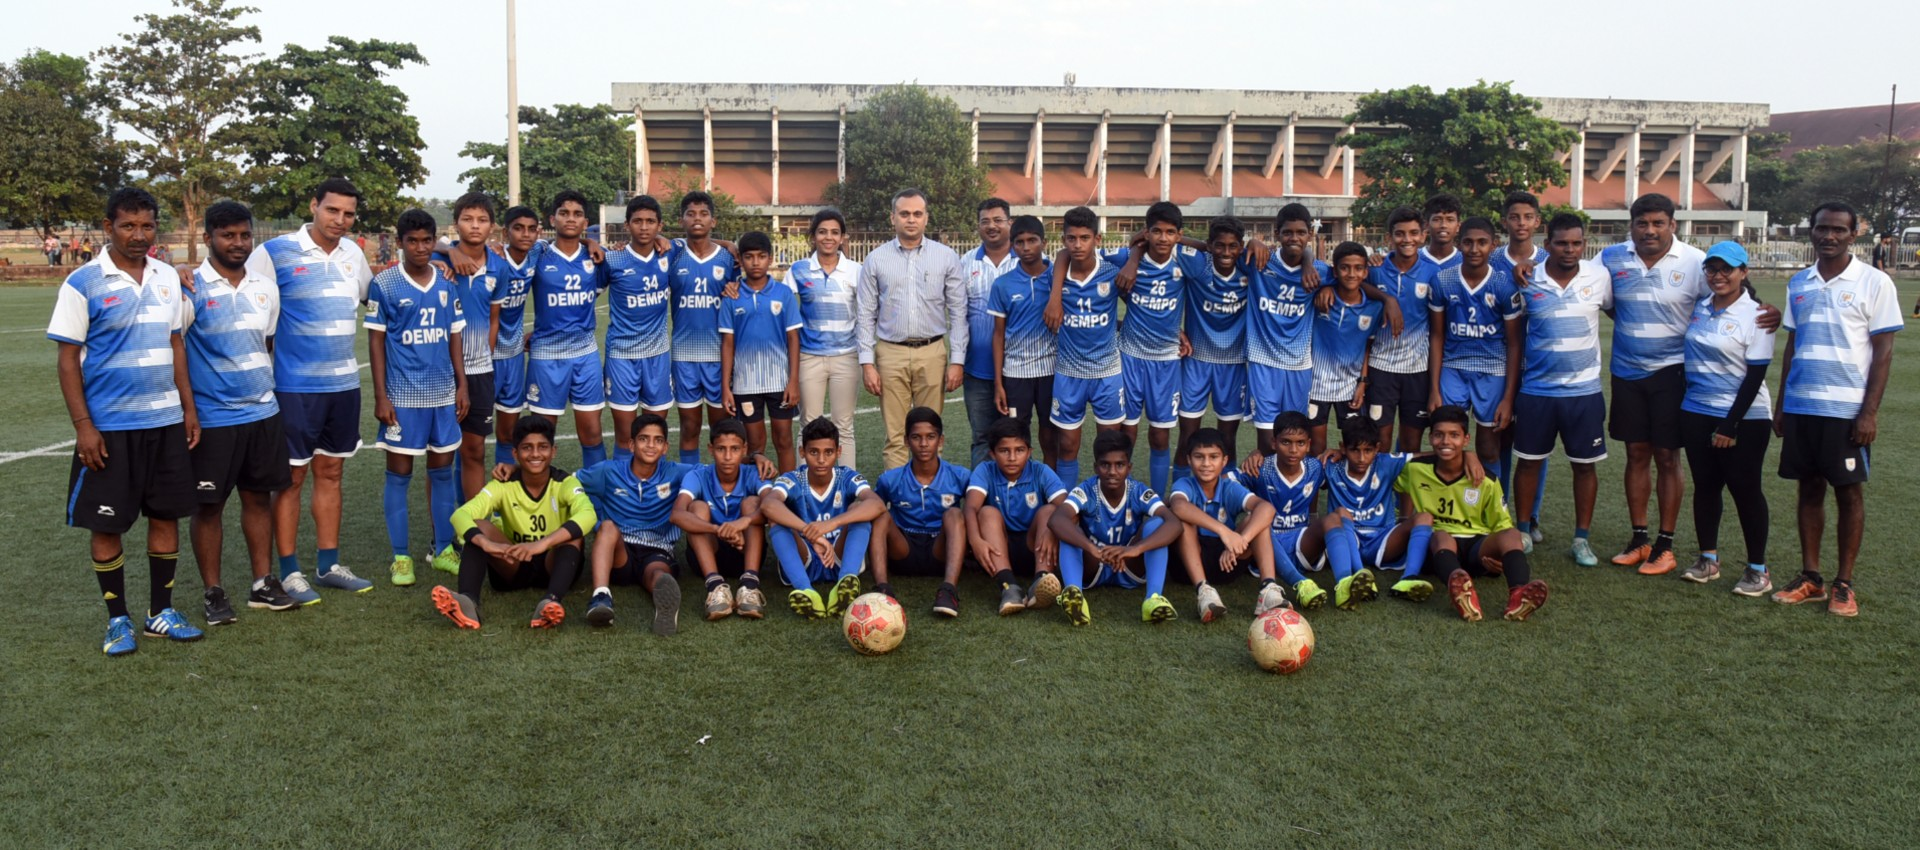 WIDE EMBED ONLY Dempo GFA U-14 Champions 2019-20